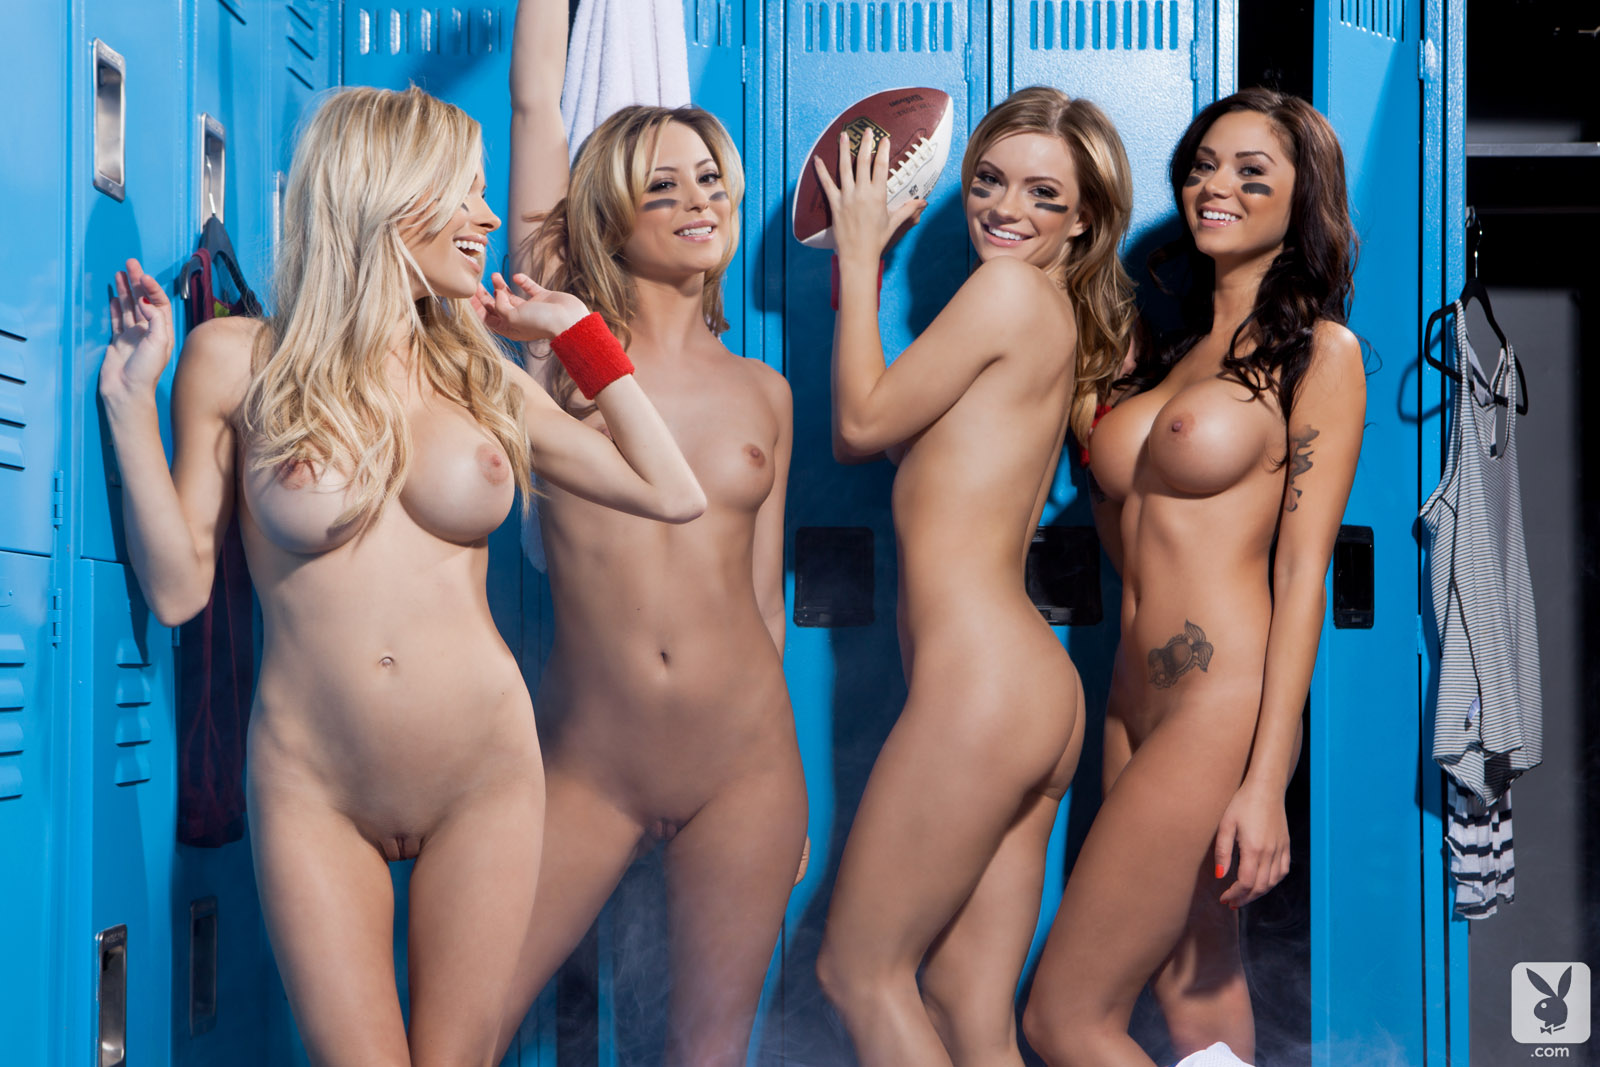 locker Girls naked in